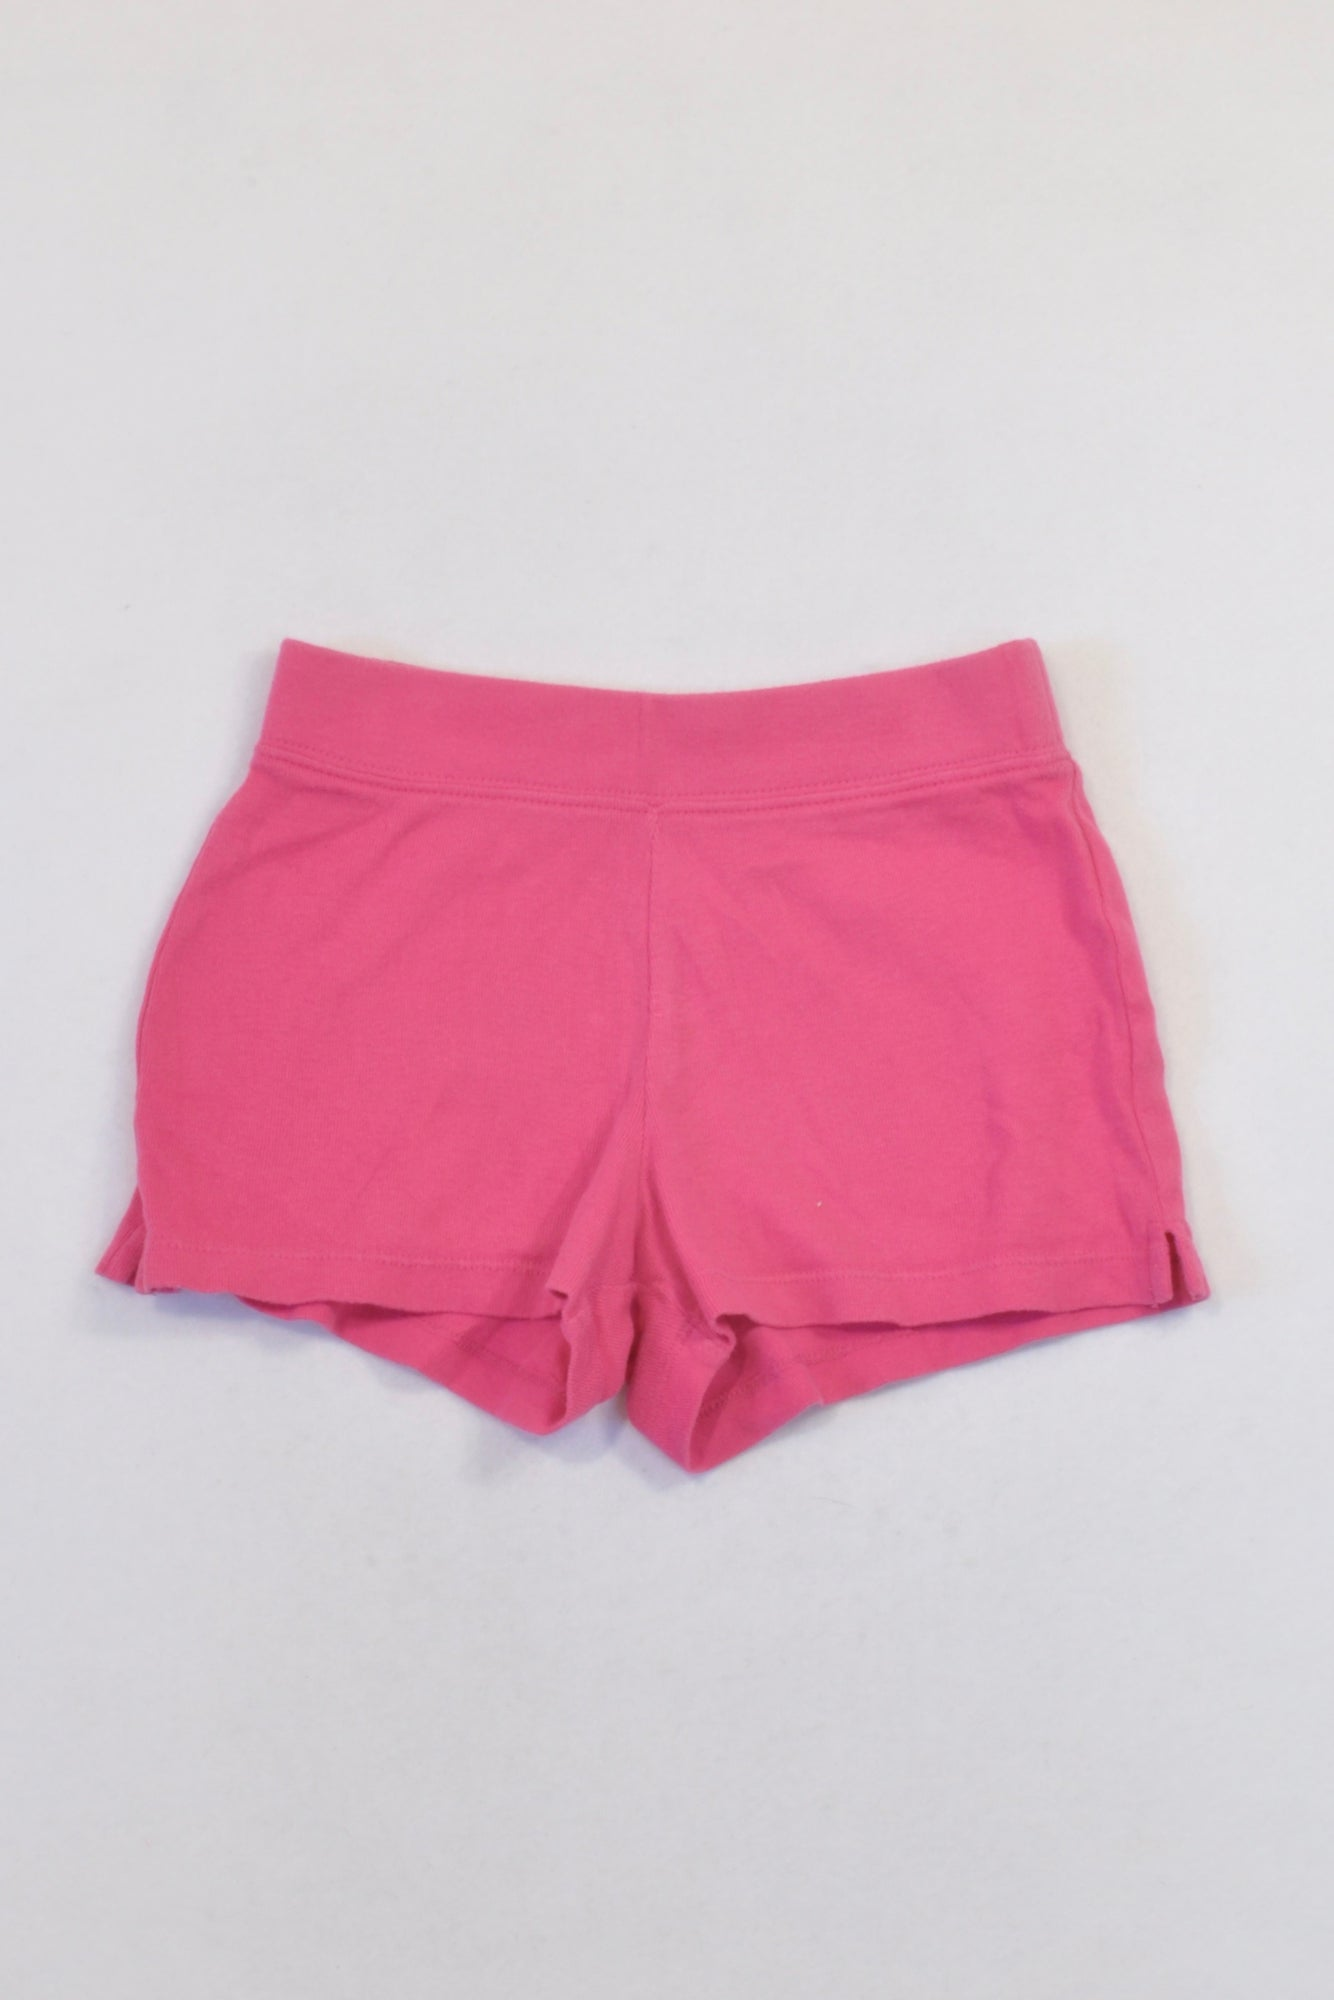 Gymboree Basic Pink Play Shorts Girls 4-5 years